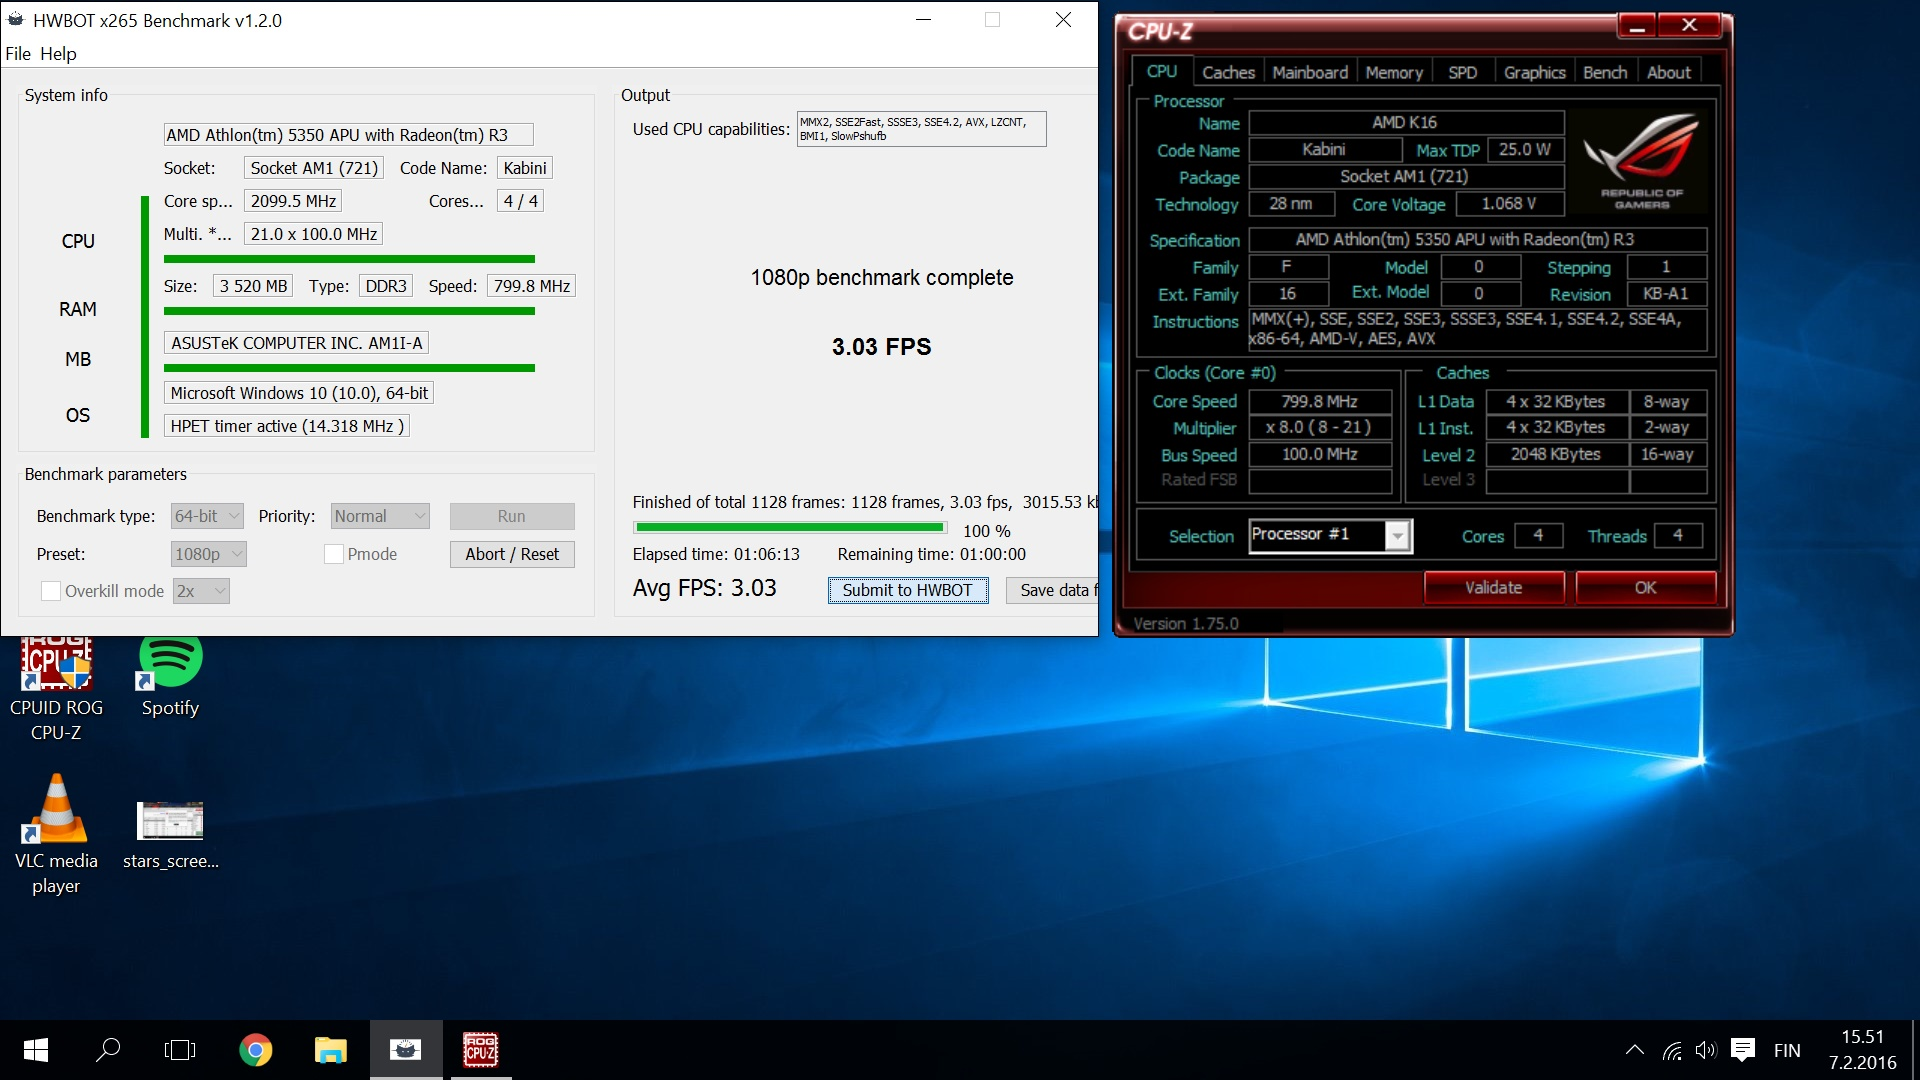 Amd Athlon 5350 With Radeon R3 infamoustr`s hwbot x265 benchmark - 1080p score: 3.03 fps